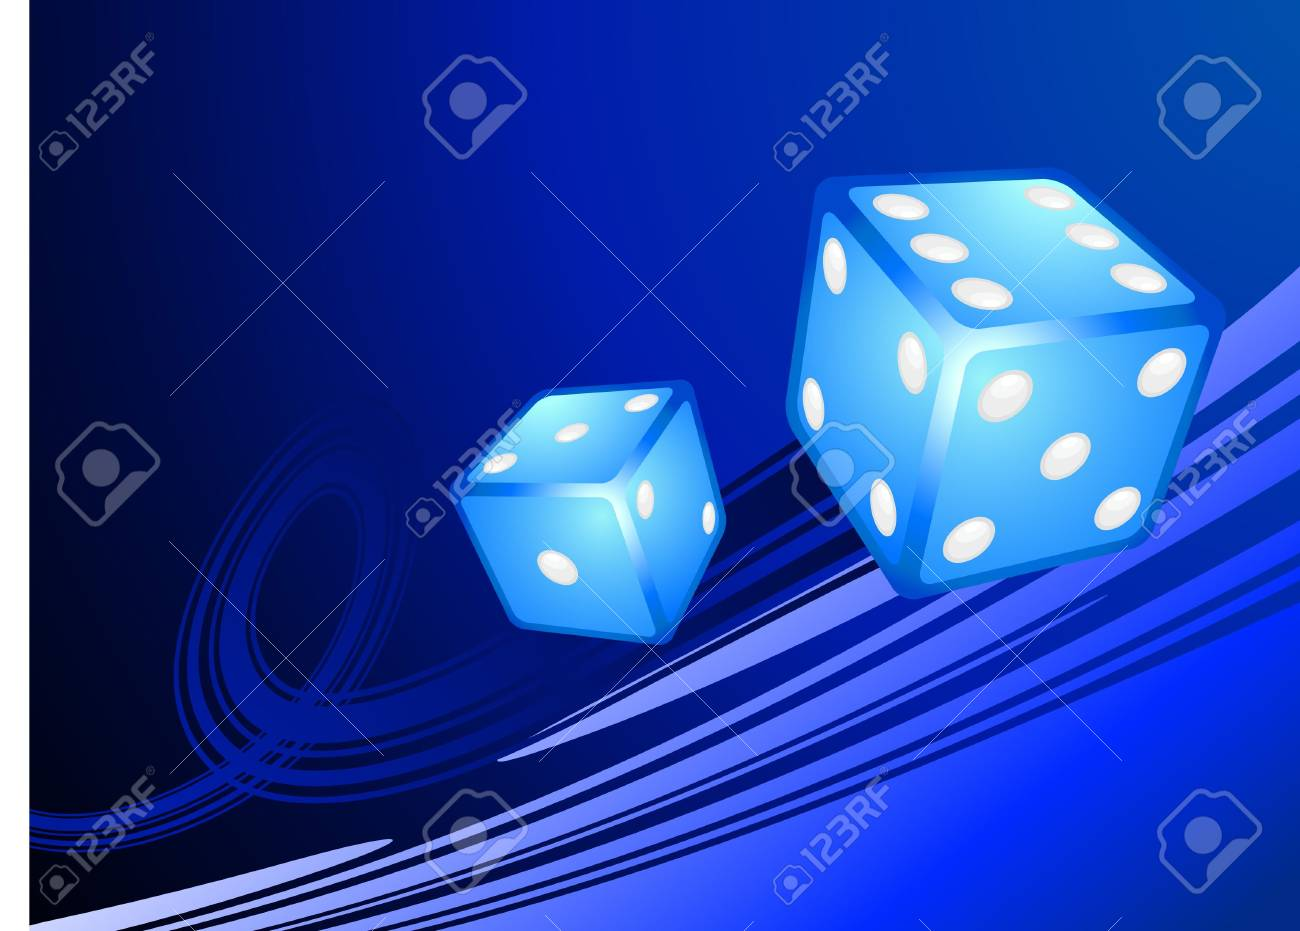 Blue Dice on Internet Background Original  Illustration Dice Ideal for Game Concept Stock Photo - 6618596